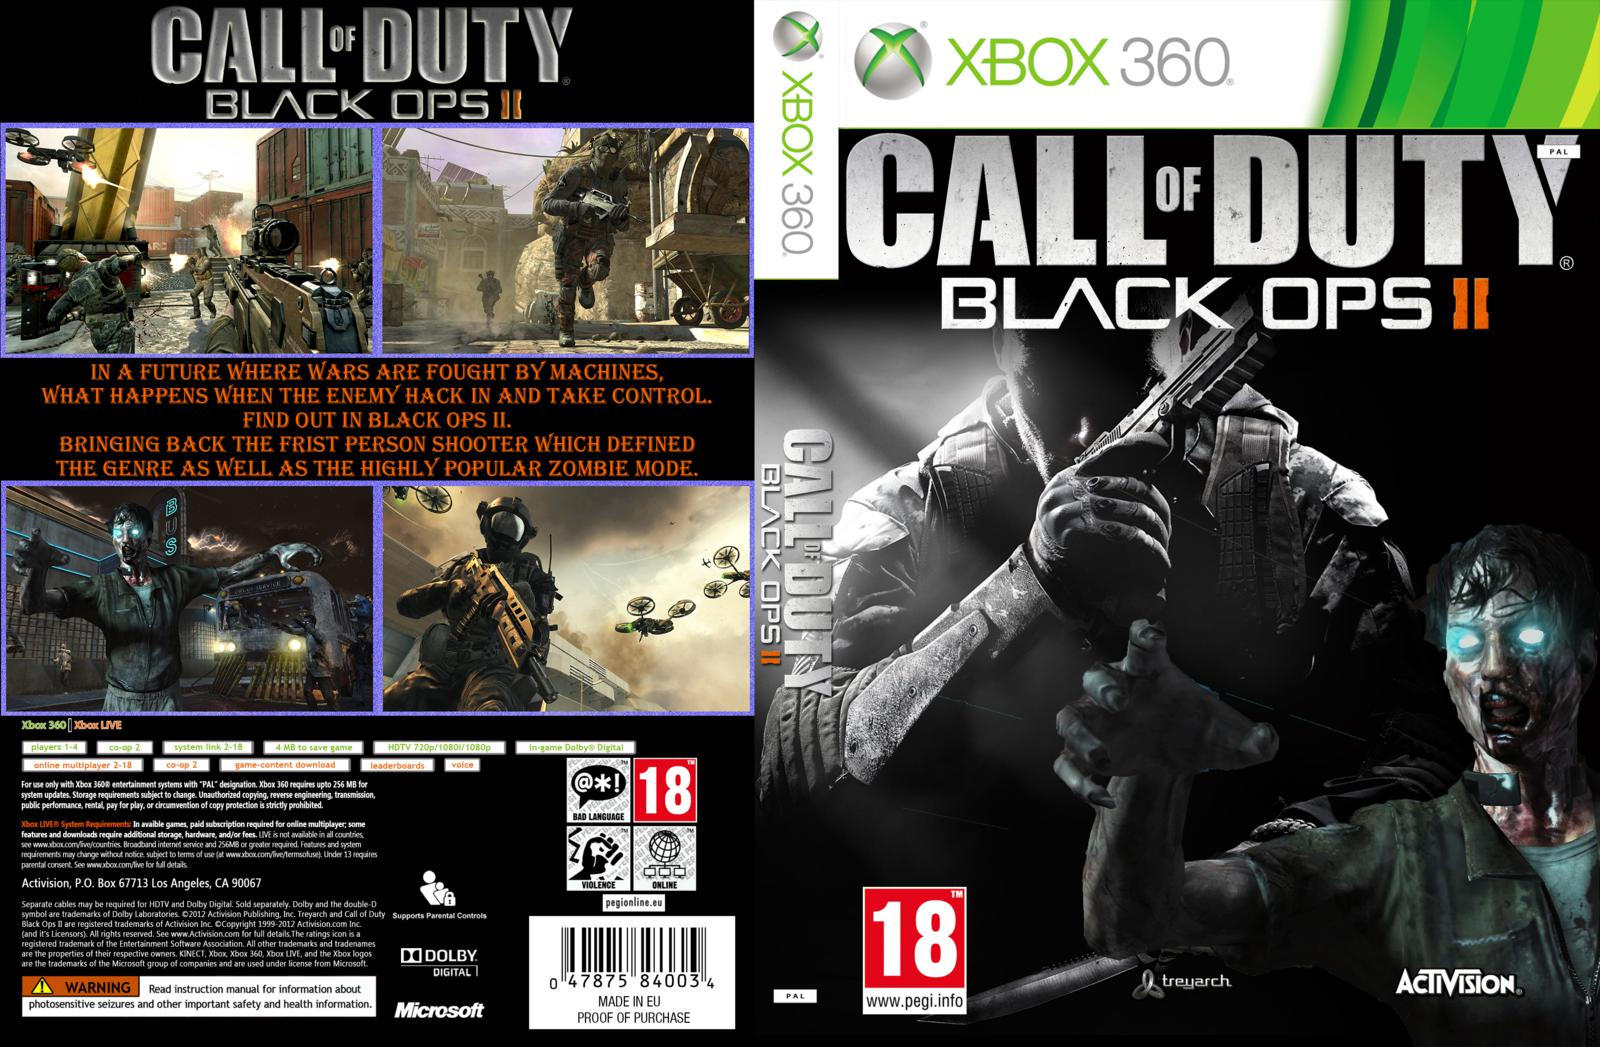 capa call of duty black ops 2 xbox 360 gamecover capas